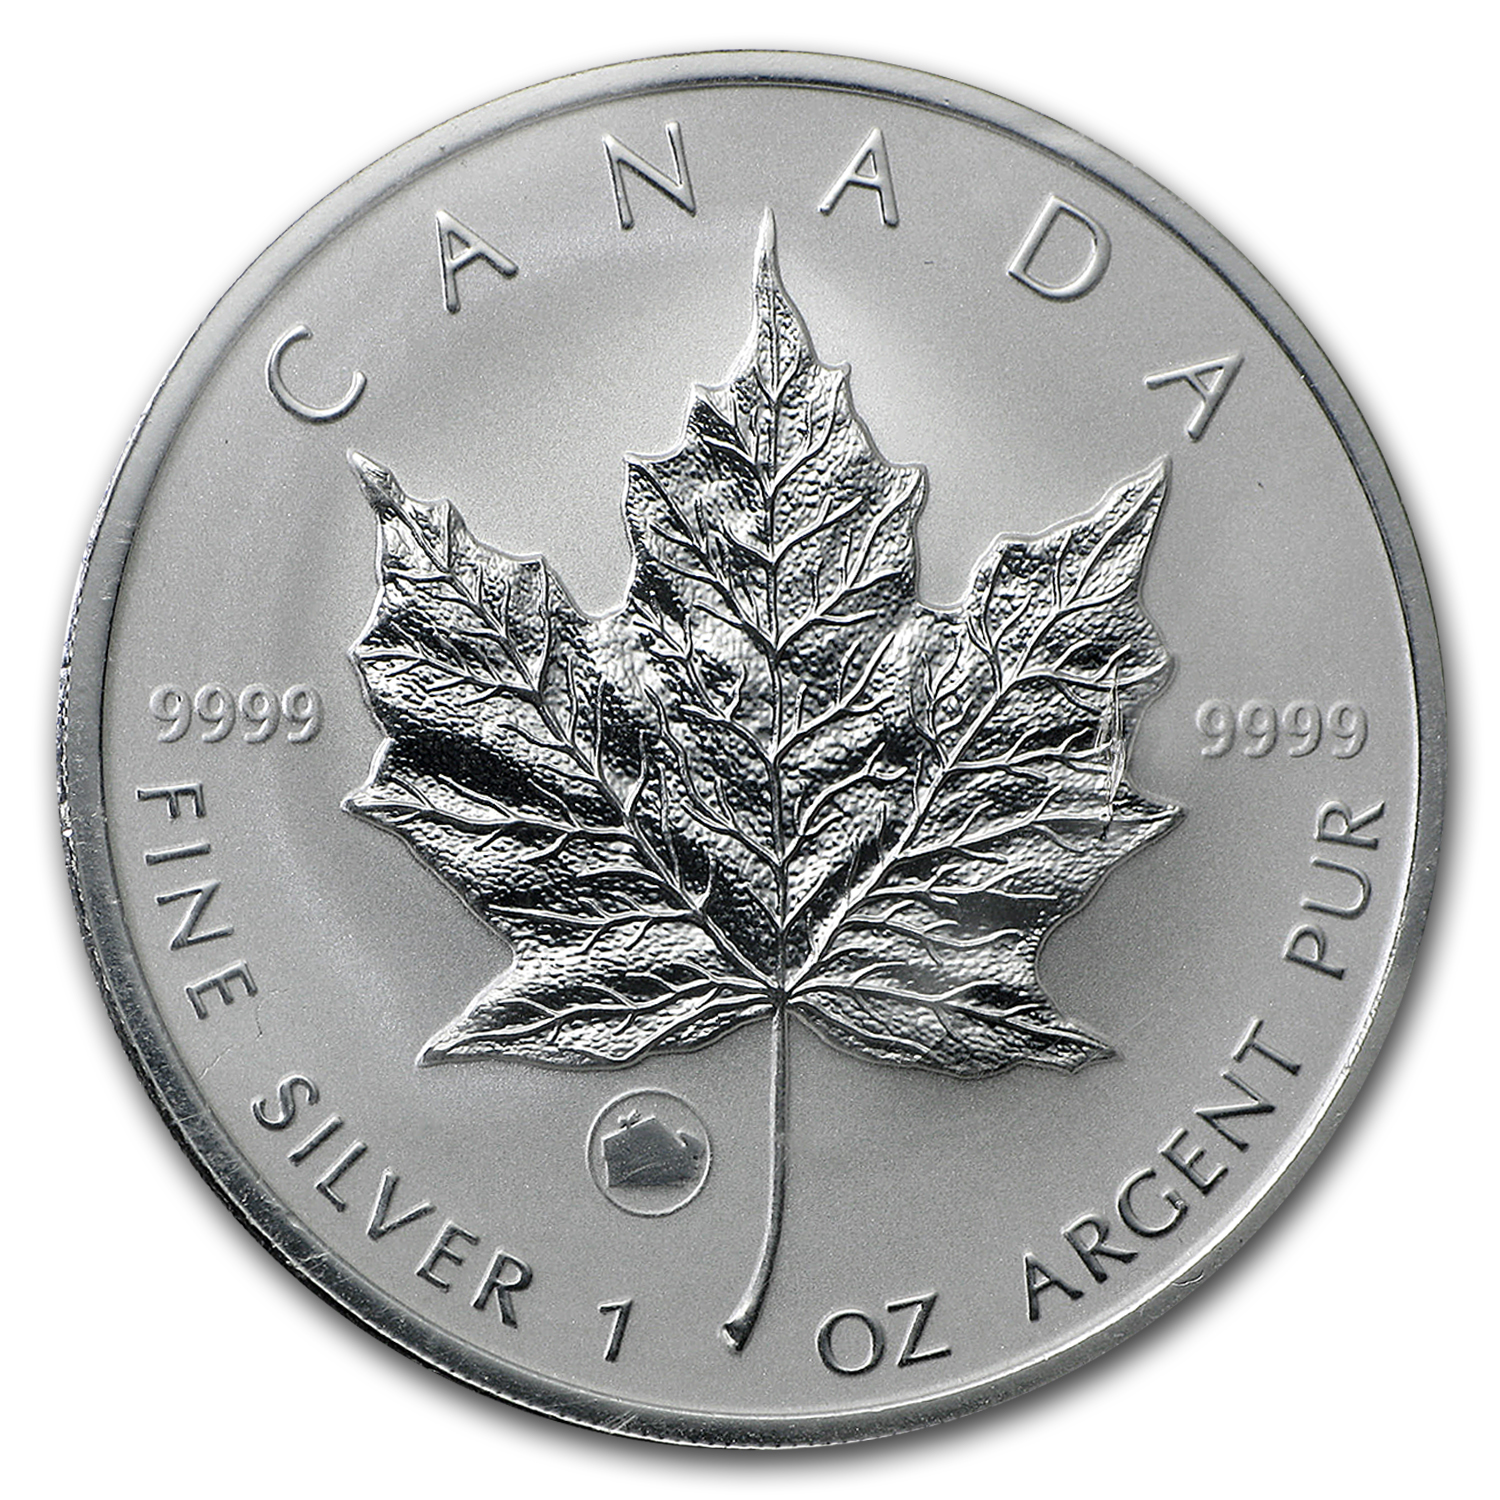 2009 Canada 1 oz Silver Maple Leaf Lunar OX Privy